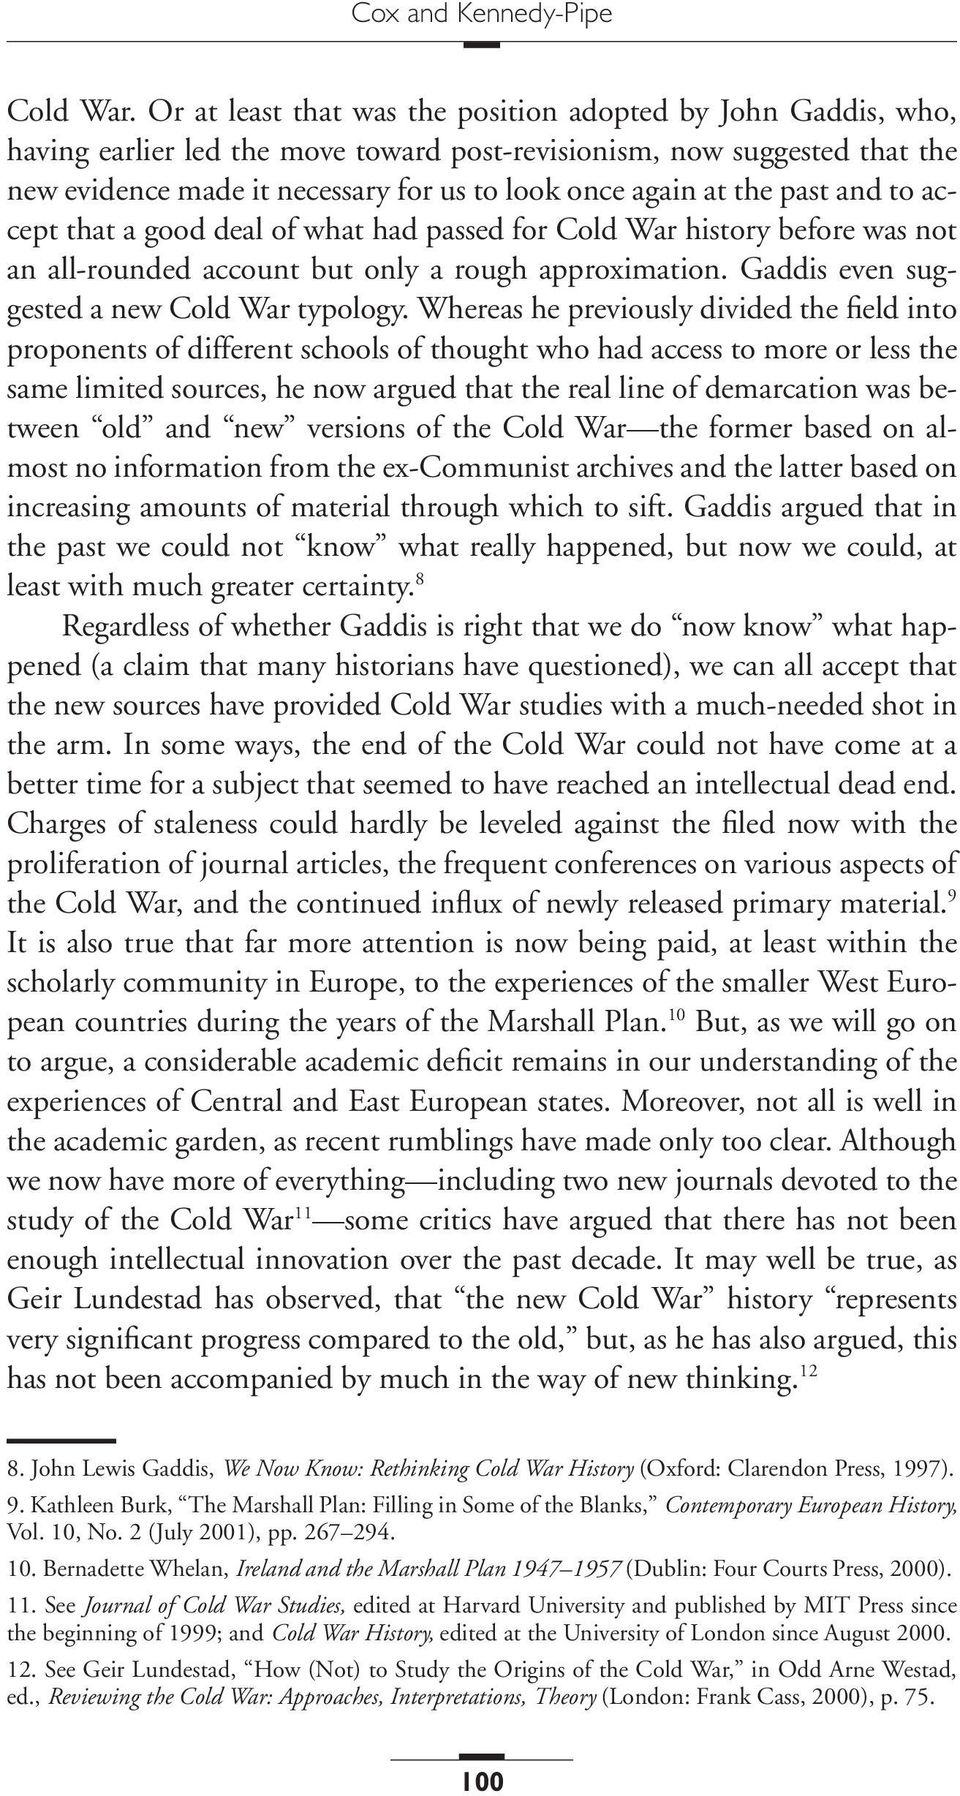 the past and to accept that a good deal of what had passed for Cold War history before was not an all-rounded account but only a rough approximation. Gaddis even suggested a new Cold War typology.